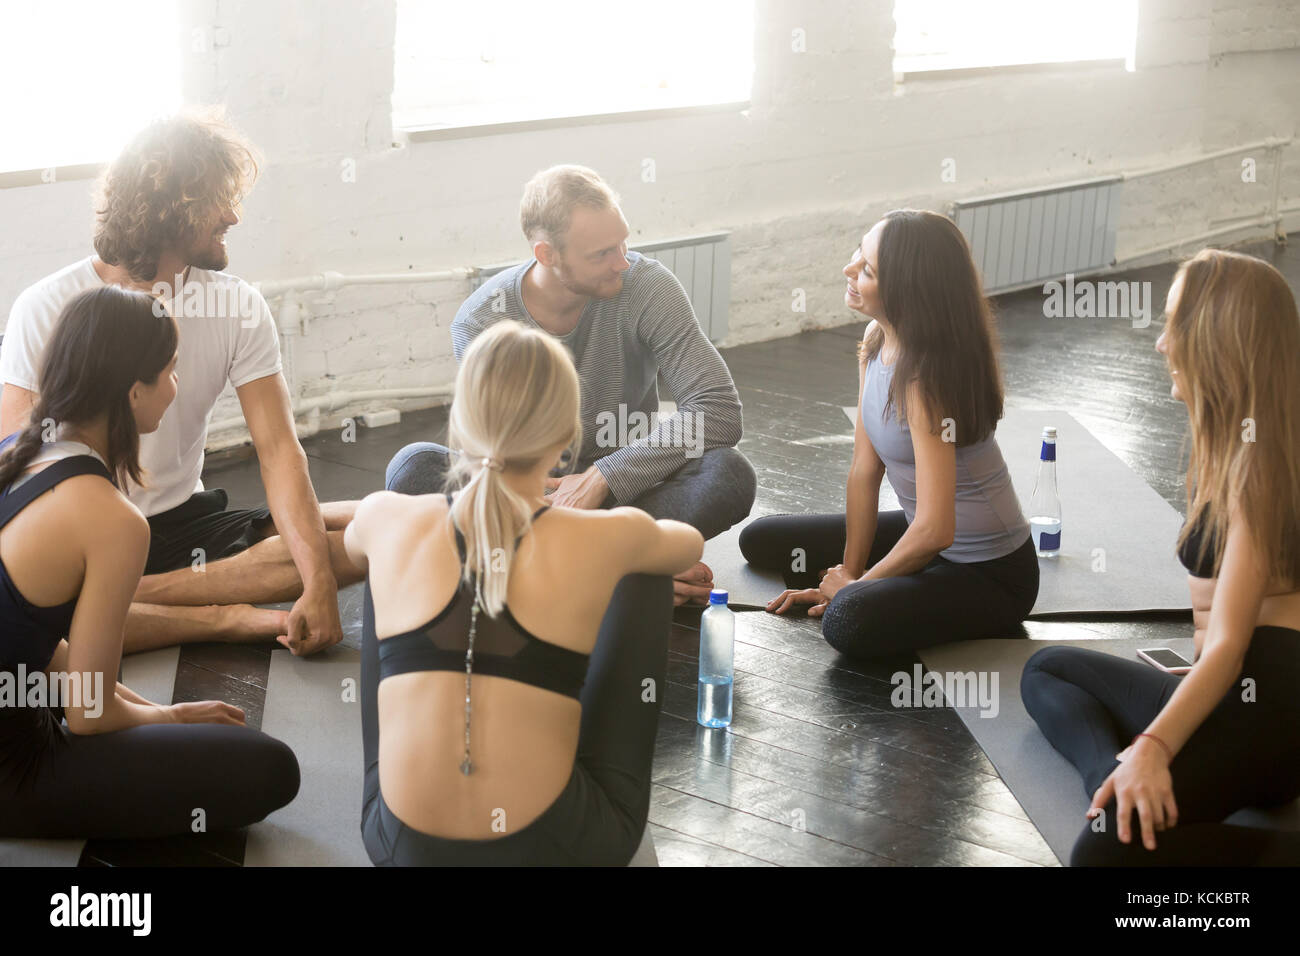 Group of sporty happy people sitting on the gym floor, students talking and resting after yoga class having an open Stock Photo